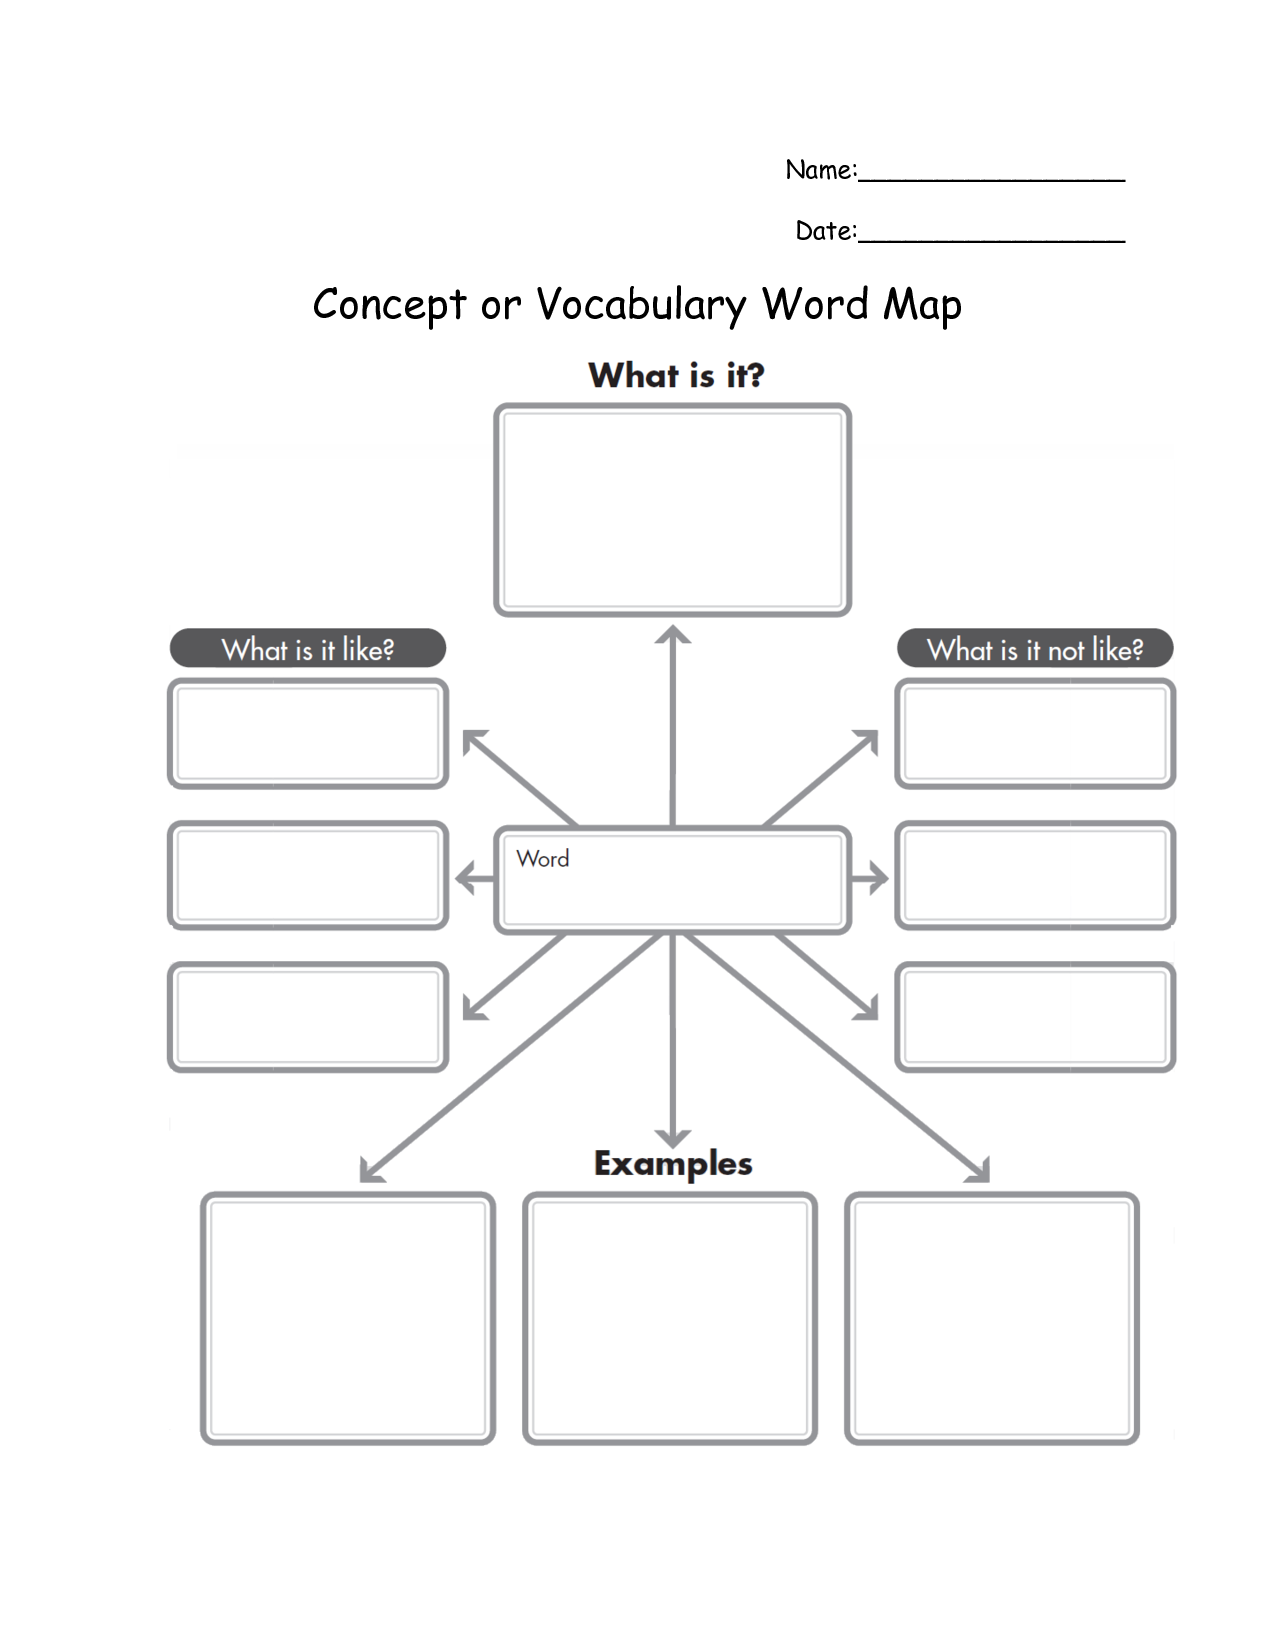 Mind Map Template For Word Concept Or Vocabulary Word Map - Word map